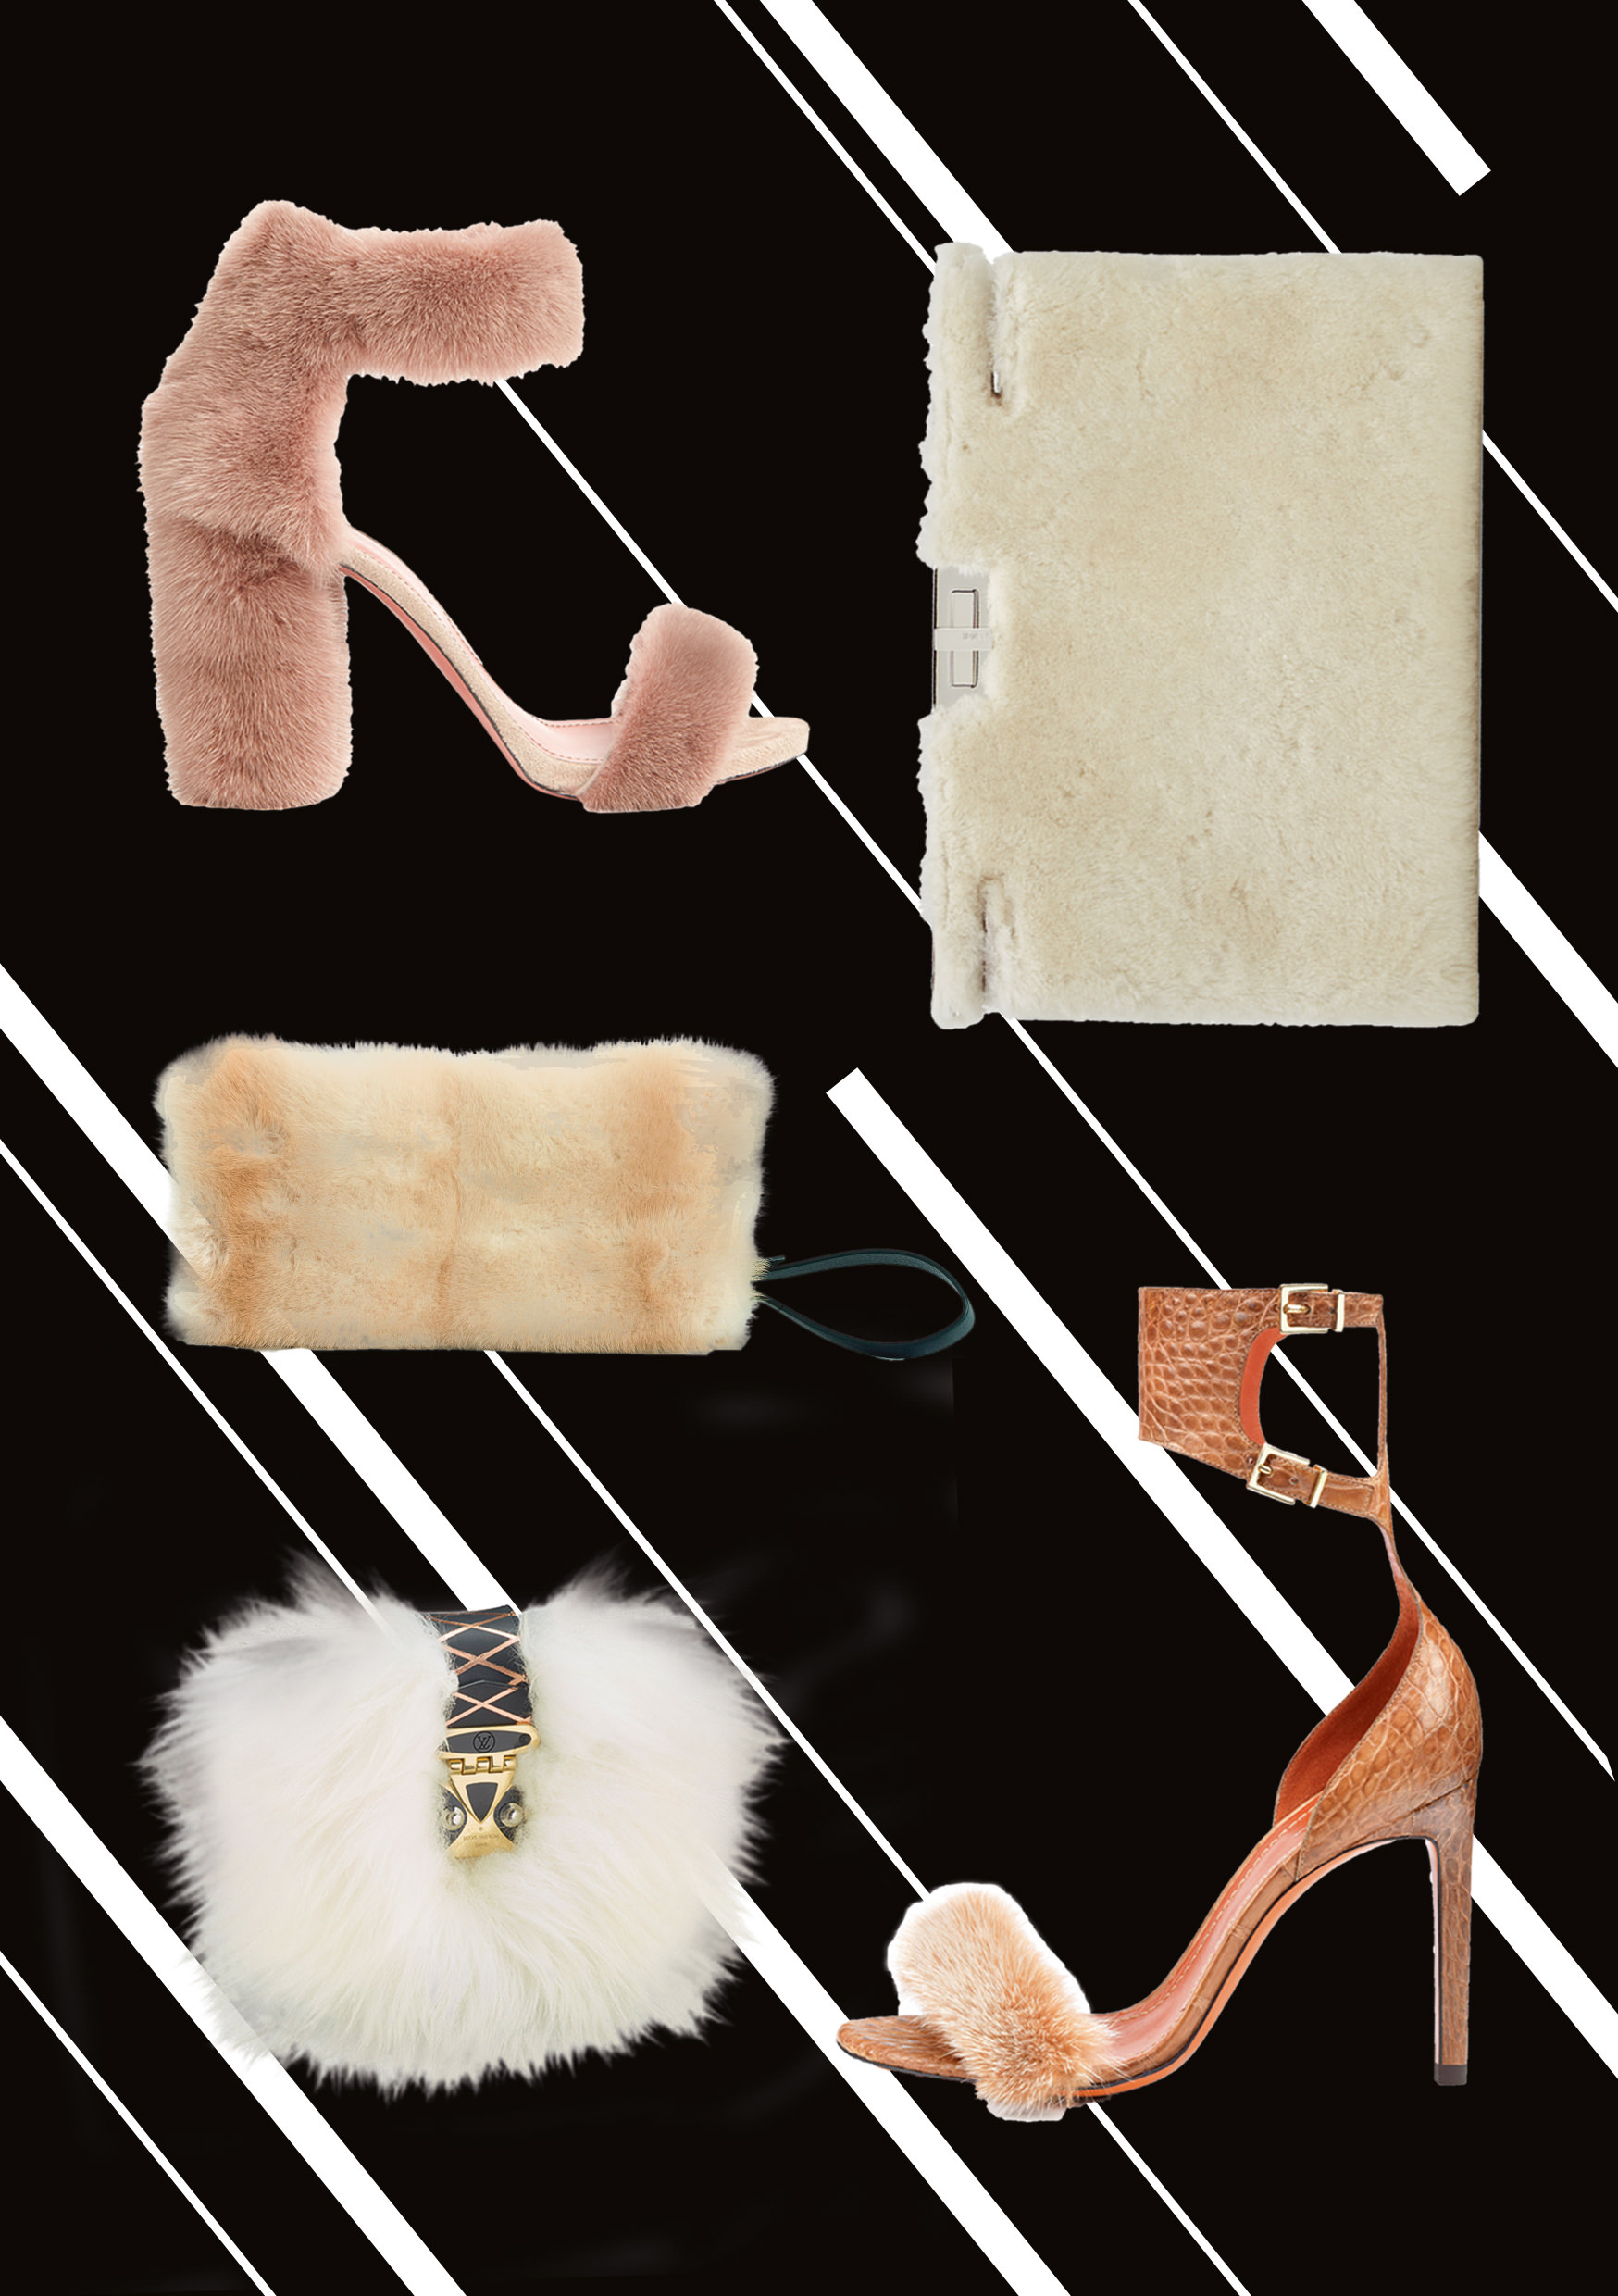 Sandals and clutches get furry